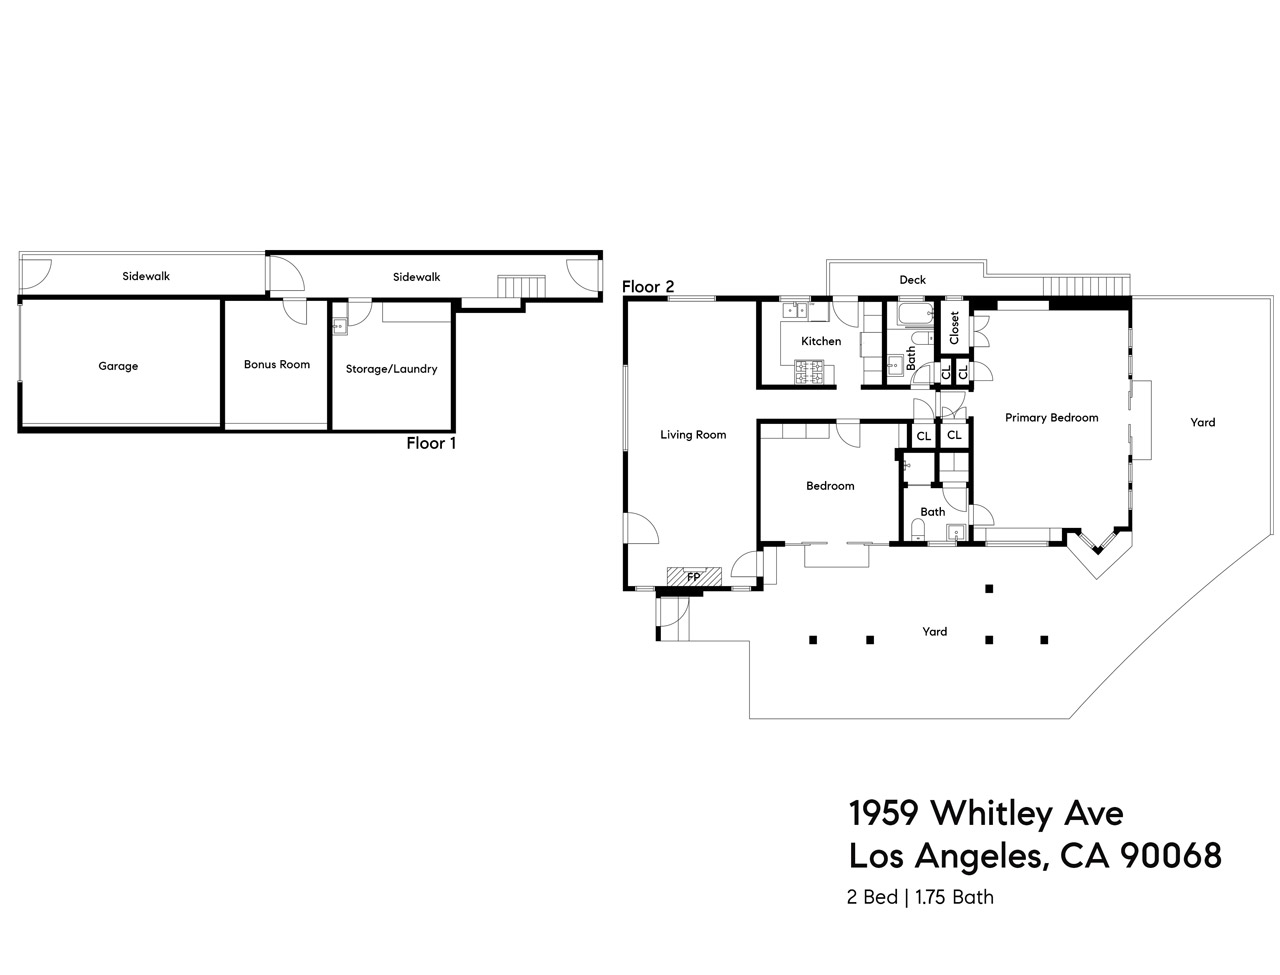 1959 Whitley Ave Whitley Heights Hollywood Hills Home for Sale Tracy Do Compass Real Estate